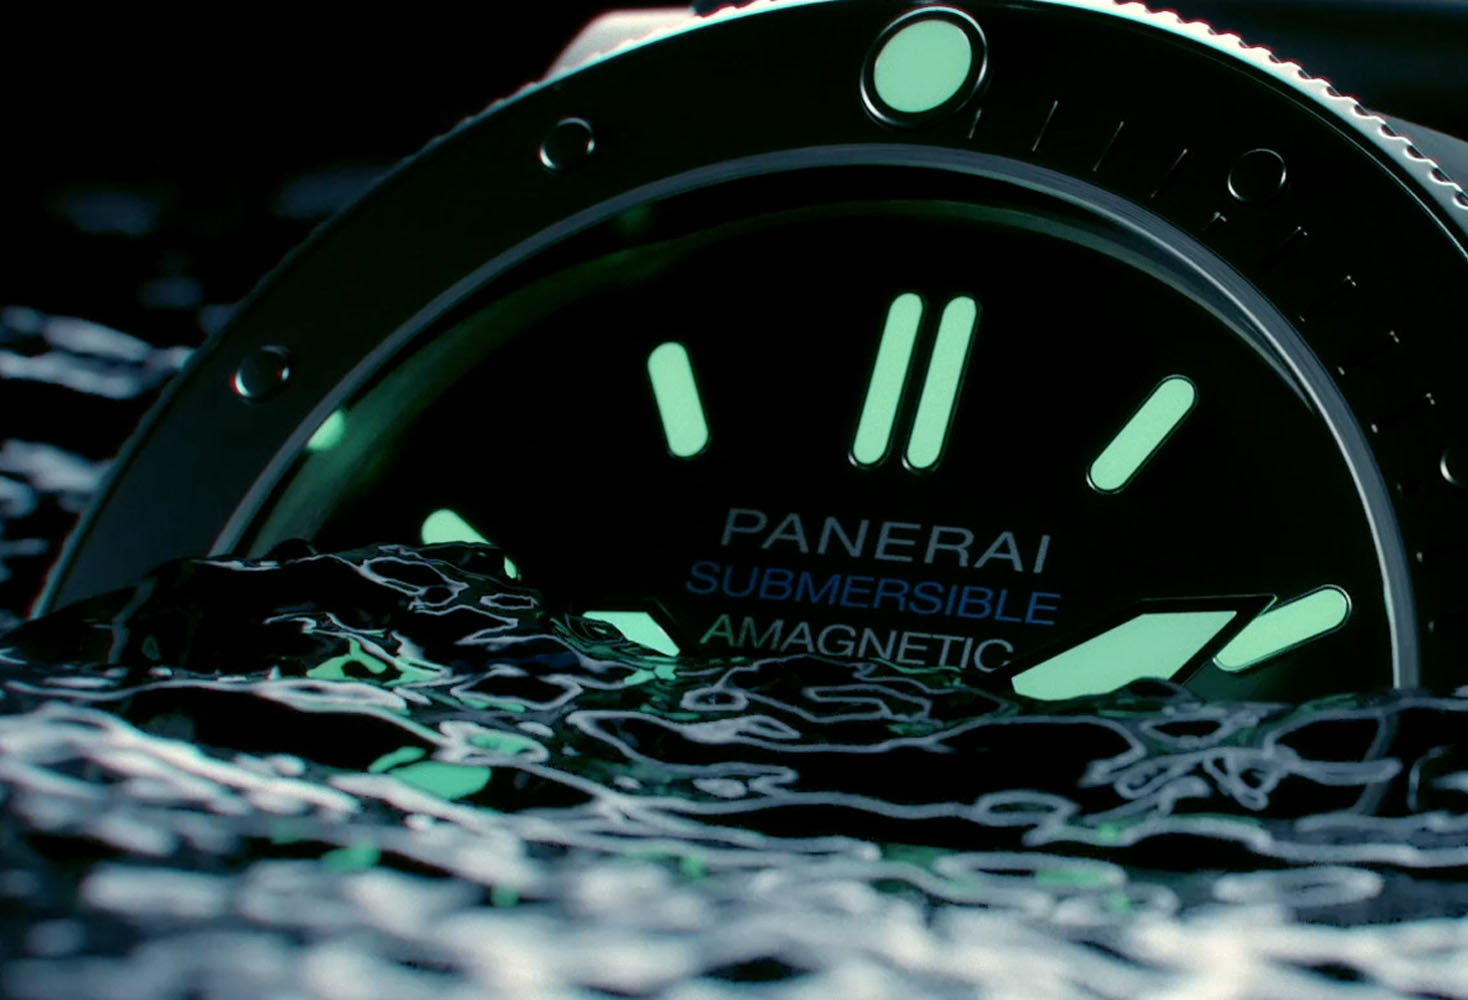 Panerai-Submerisble:Best Watches Of SIHH 2019